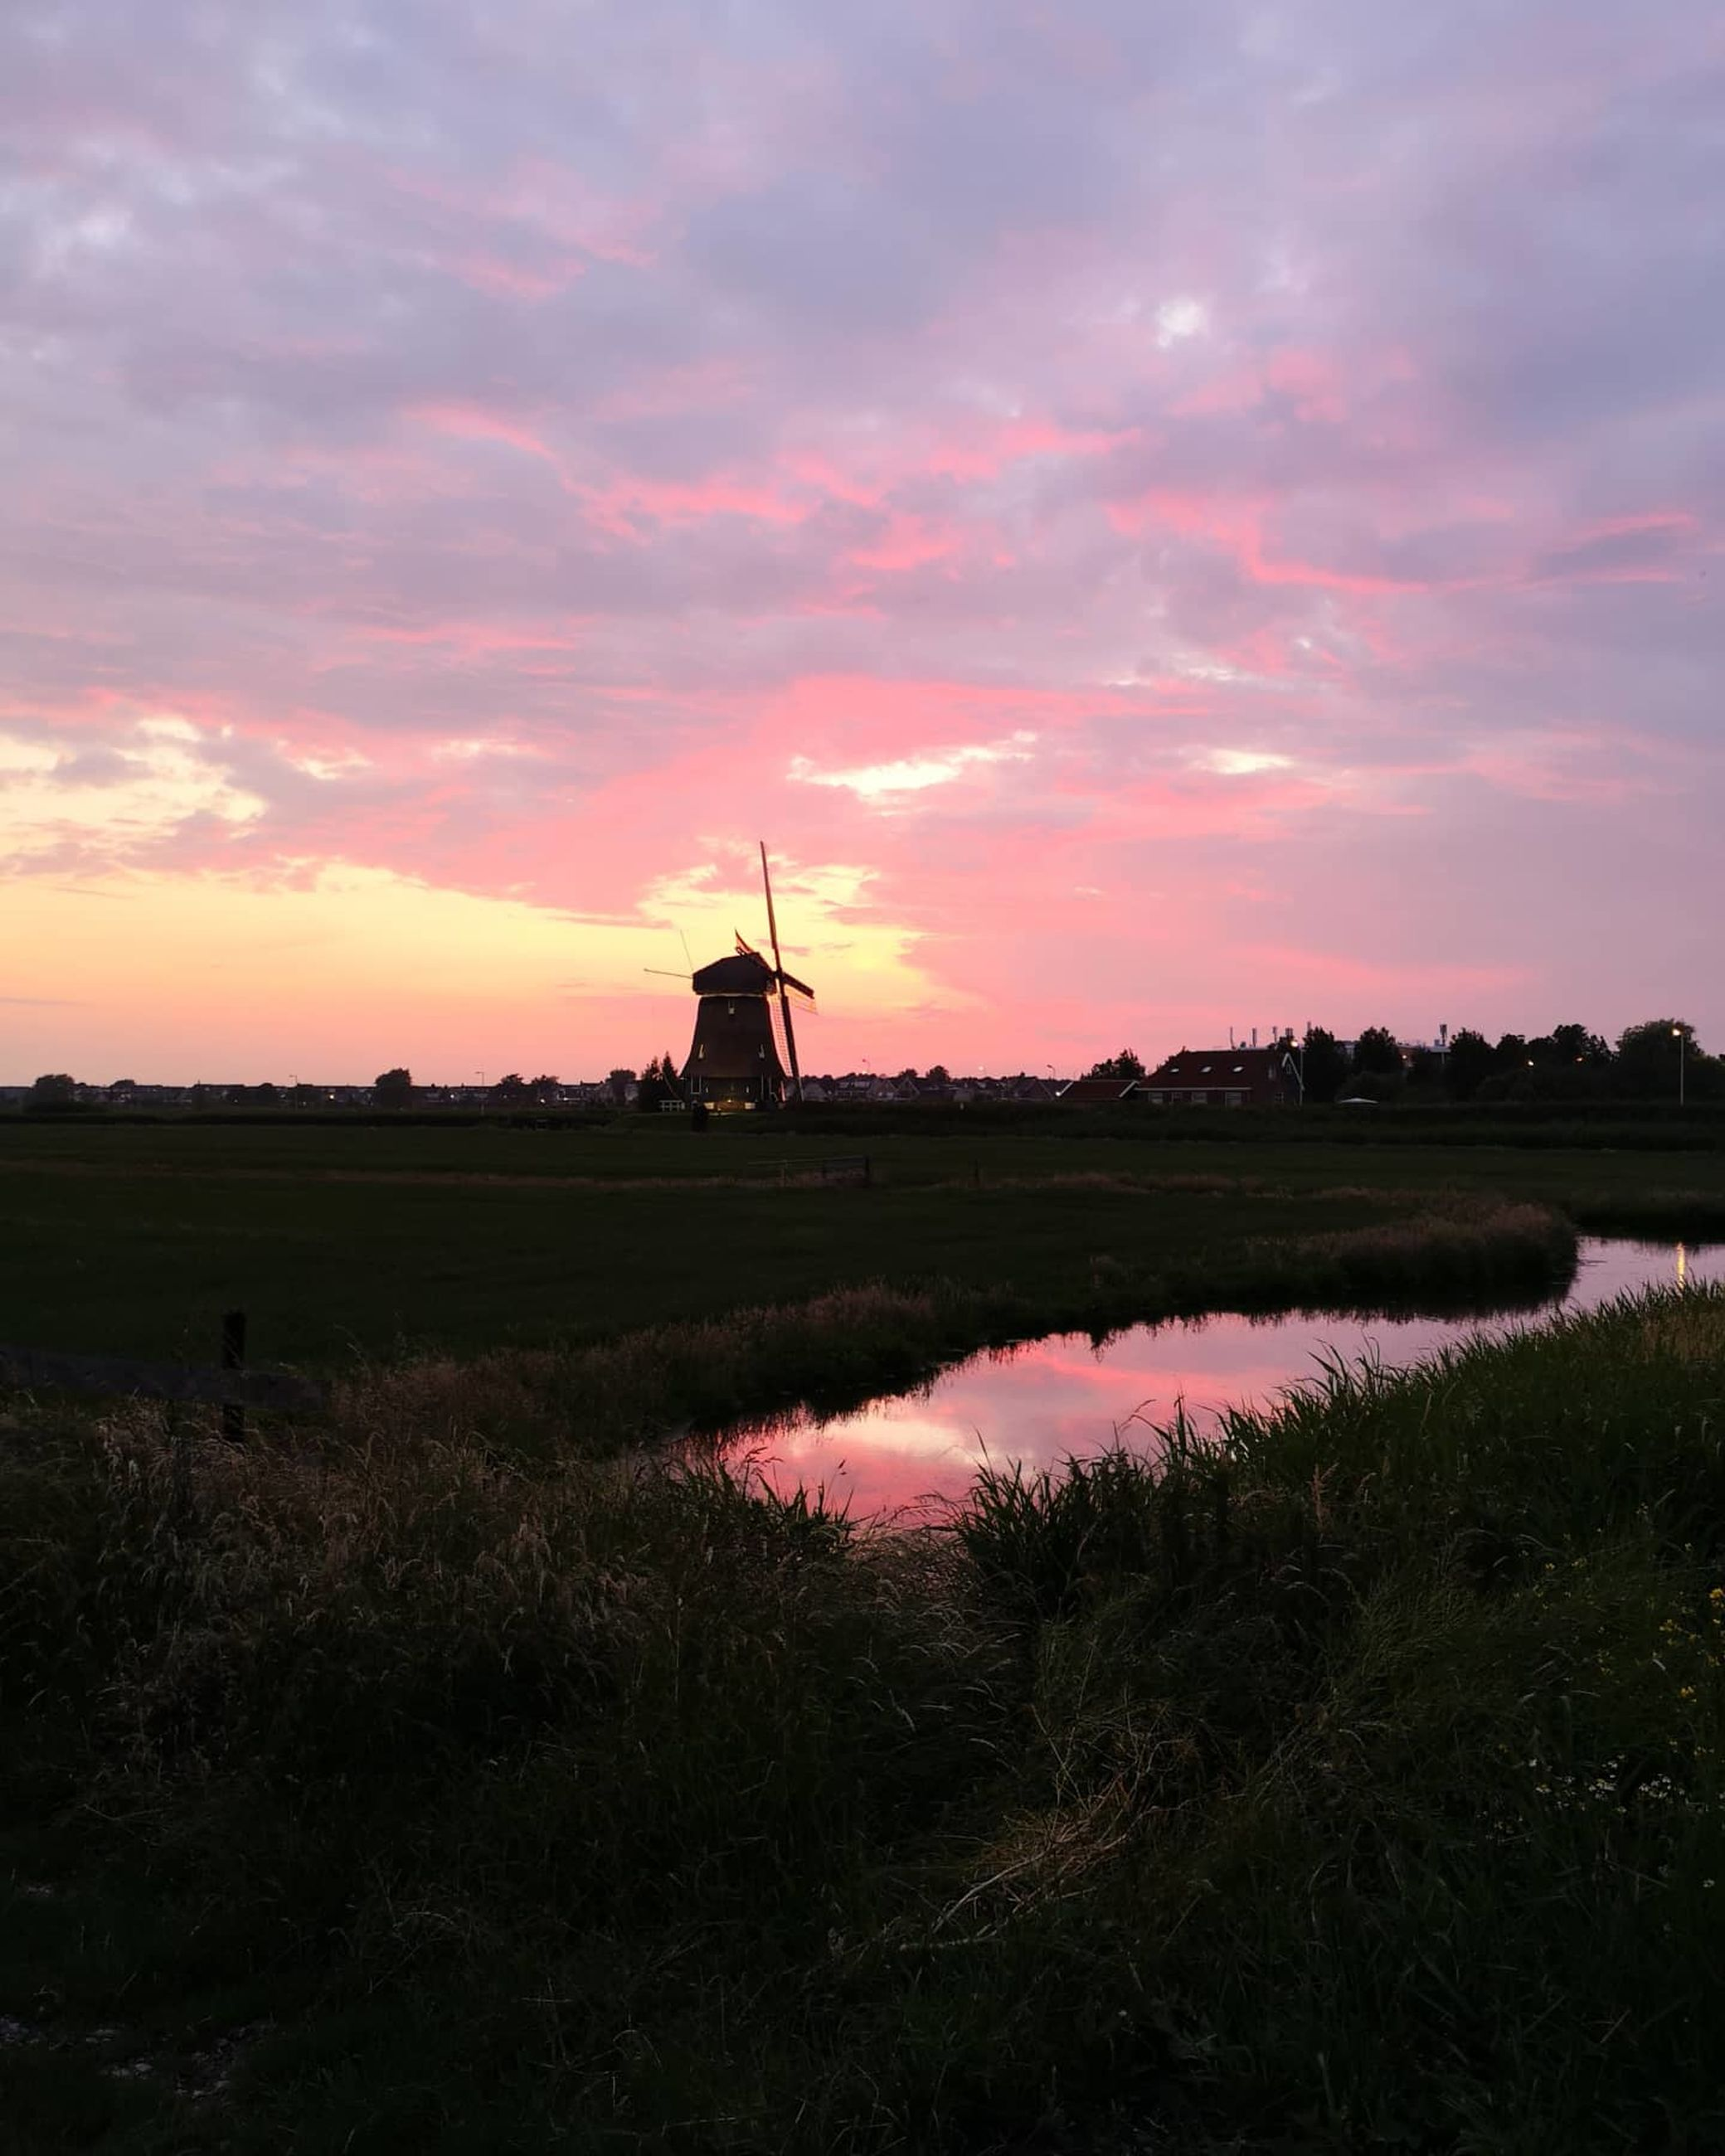 sky, environment, dawn, sunset, windmill, landscape, nature, cloud, horizon, environmental conservation, wind power, water, wind turbine, evening, turbine, beauty in nature, plant, architecture, rural scene, power generation, renewable energy, no people, scenics - nature, reflection, field, agriculture, afterglow, silhouette, land, alternative energy, built structure, tranquility, grass, outdoors, pink, tower, social issues, travel destinations, travel, traditional windmill, tranquil scene, mill, industry, technology, business finance and industry, lake